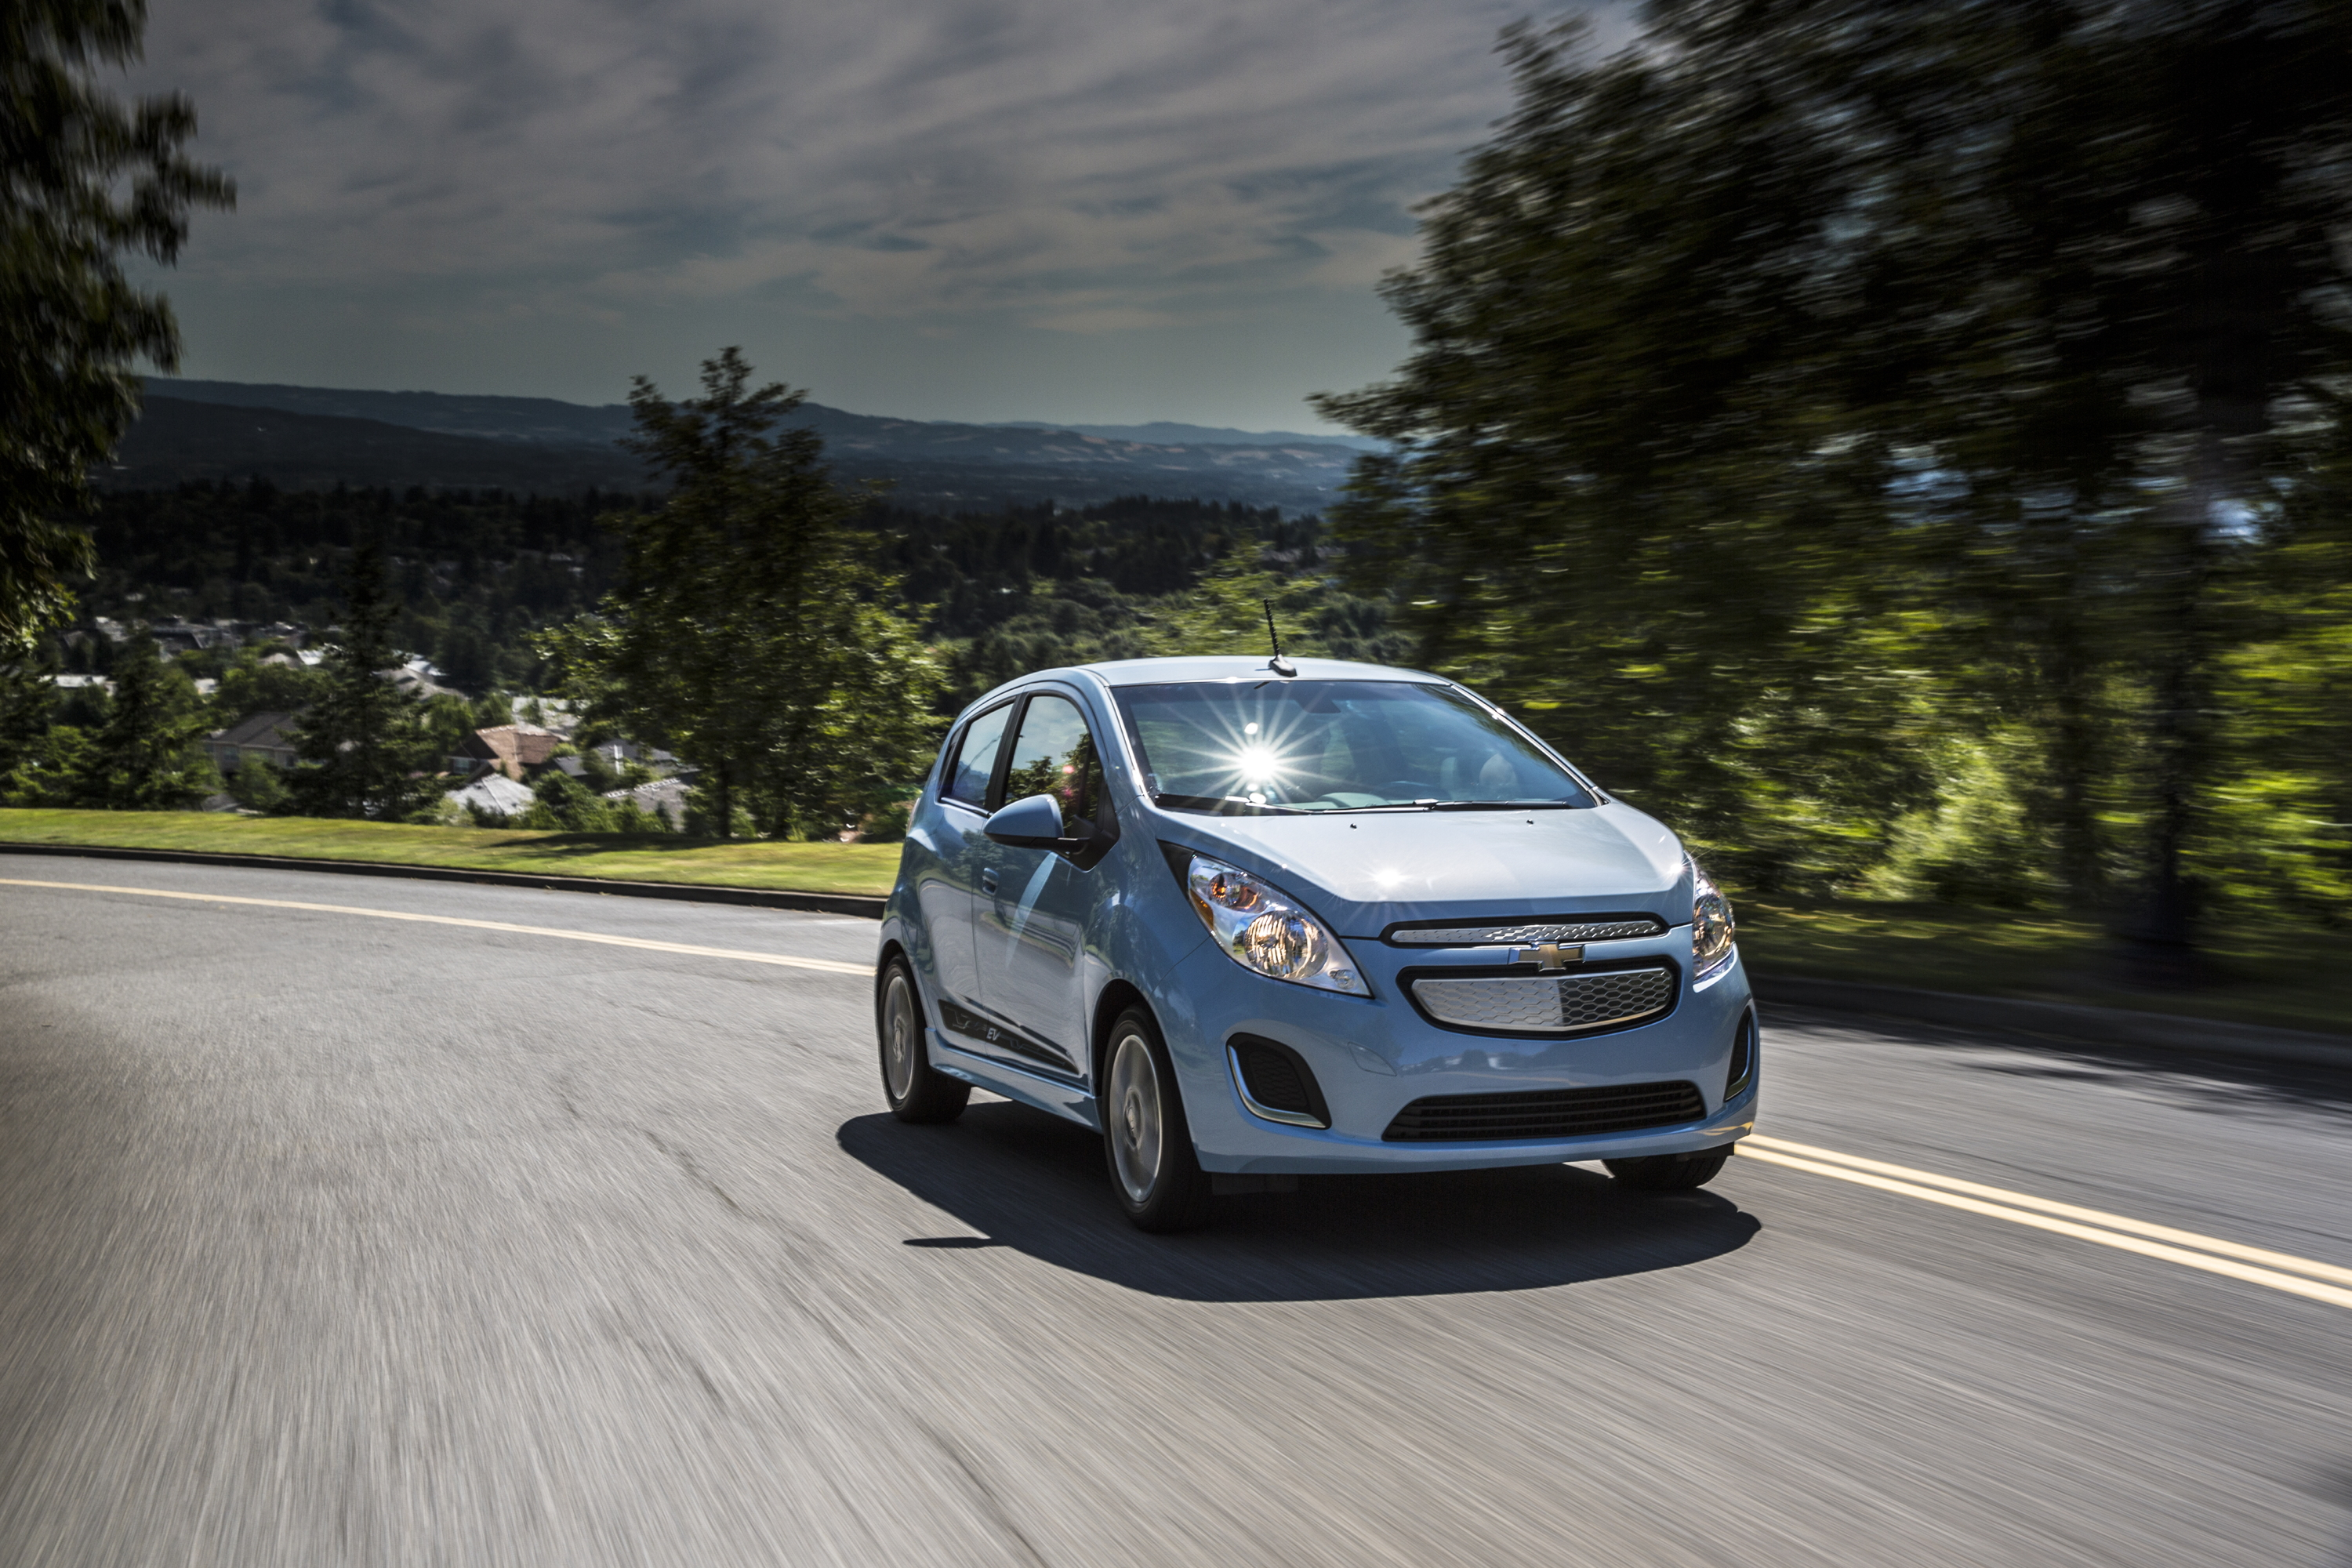 chevrolet pressroom united states images Chevy Spark Ev Wiring Diagrams Download Chevy Spark Ev Wiring Diagrams Download #4 2017 Chevy Spark EV